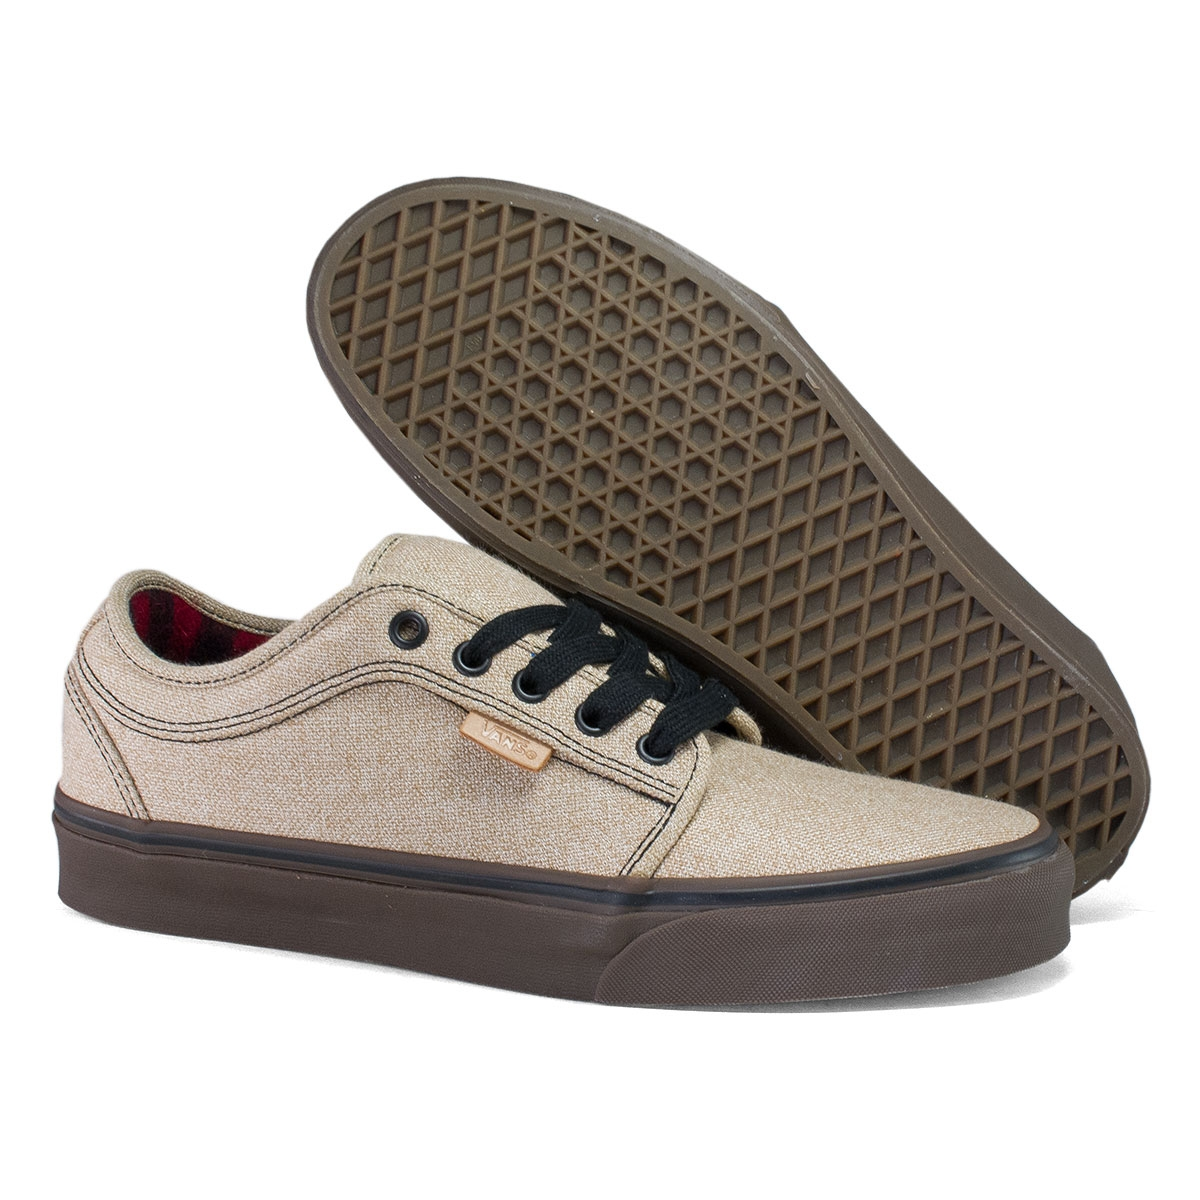 vans shoes chukka low tan & white skate shoe